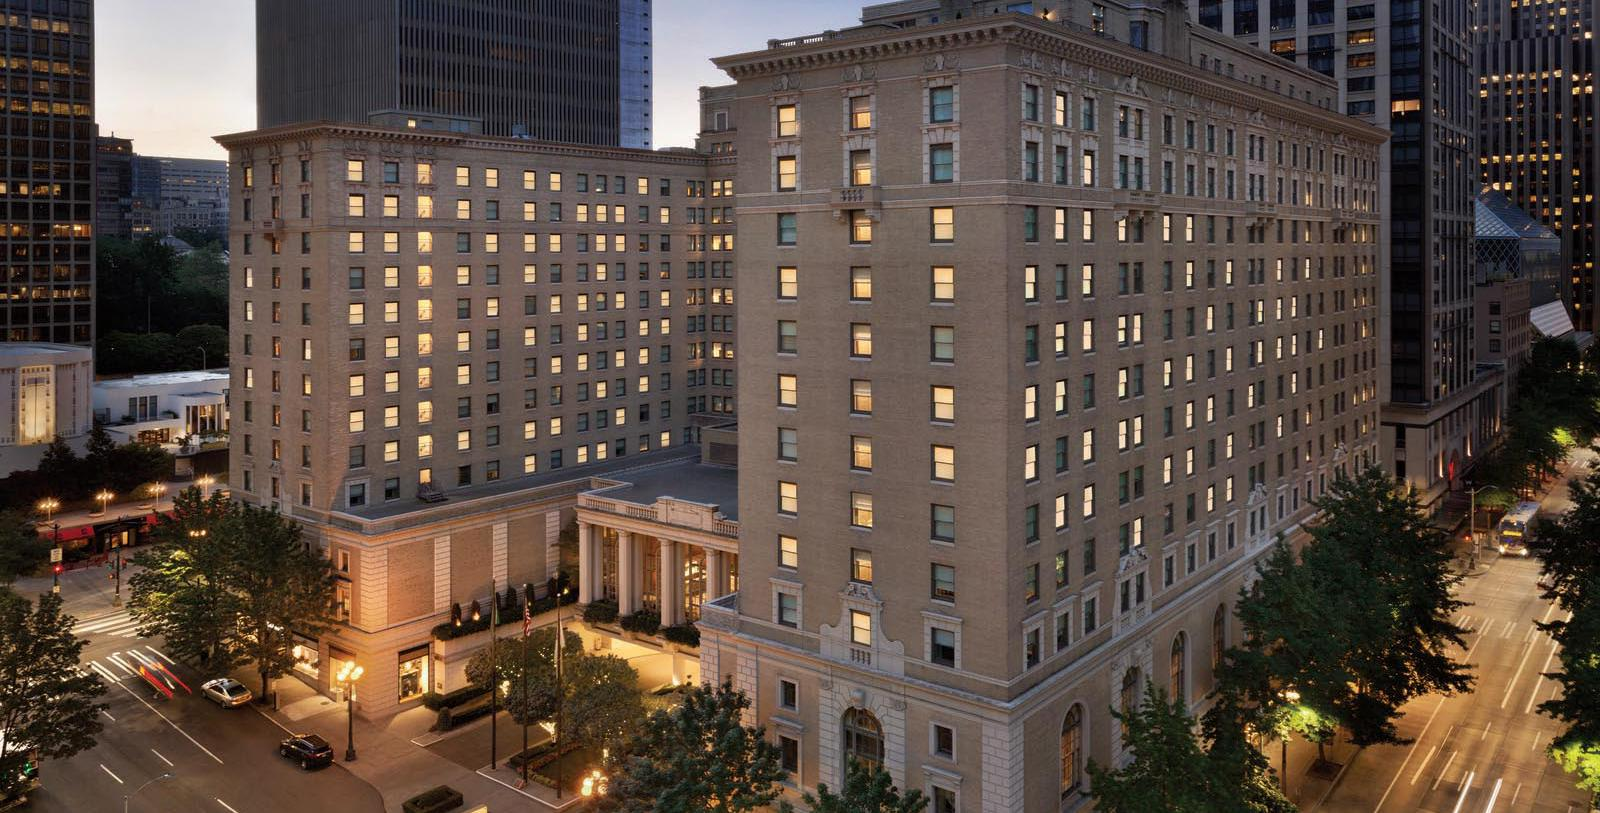 Image of hotel exterior at night Fairmont Olympic Hotel, 1924, Member of Historic Hotels of America, in Seattle, Washington, Special Offers, Discounted Rates, Families, Romantic Escape, Honeymoons, Anniversaries, Reunions